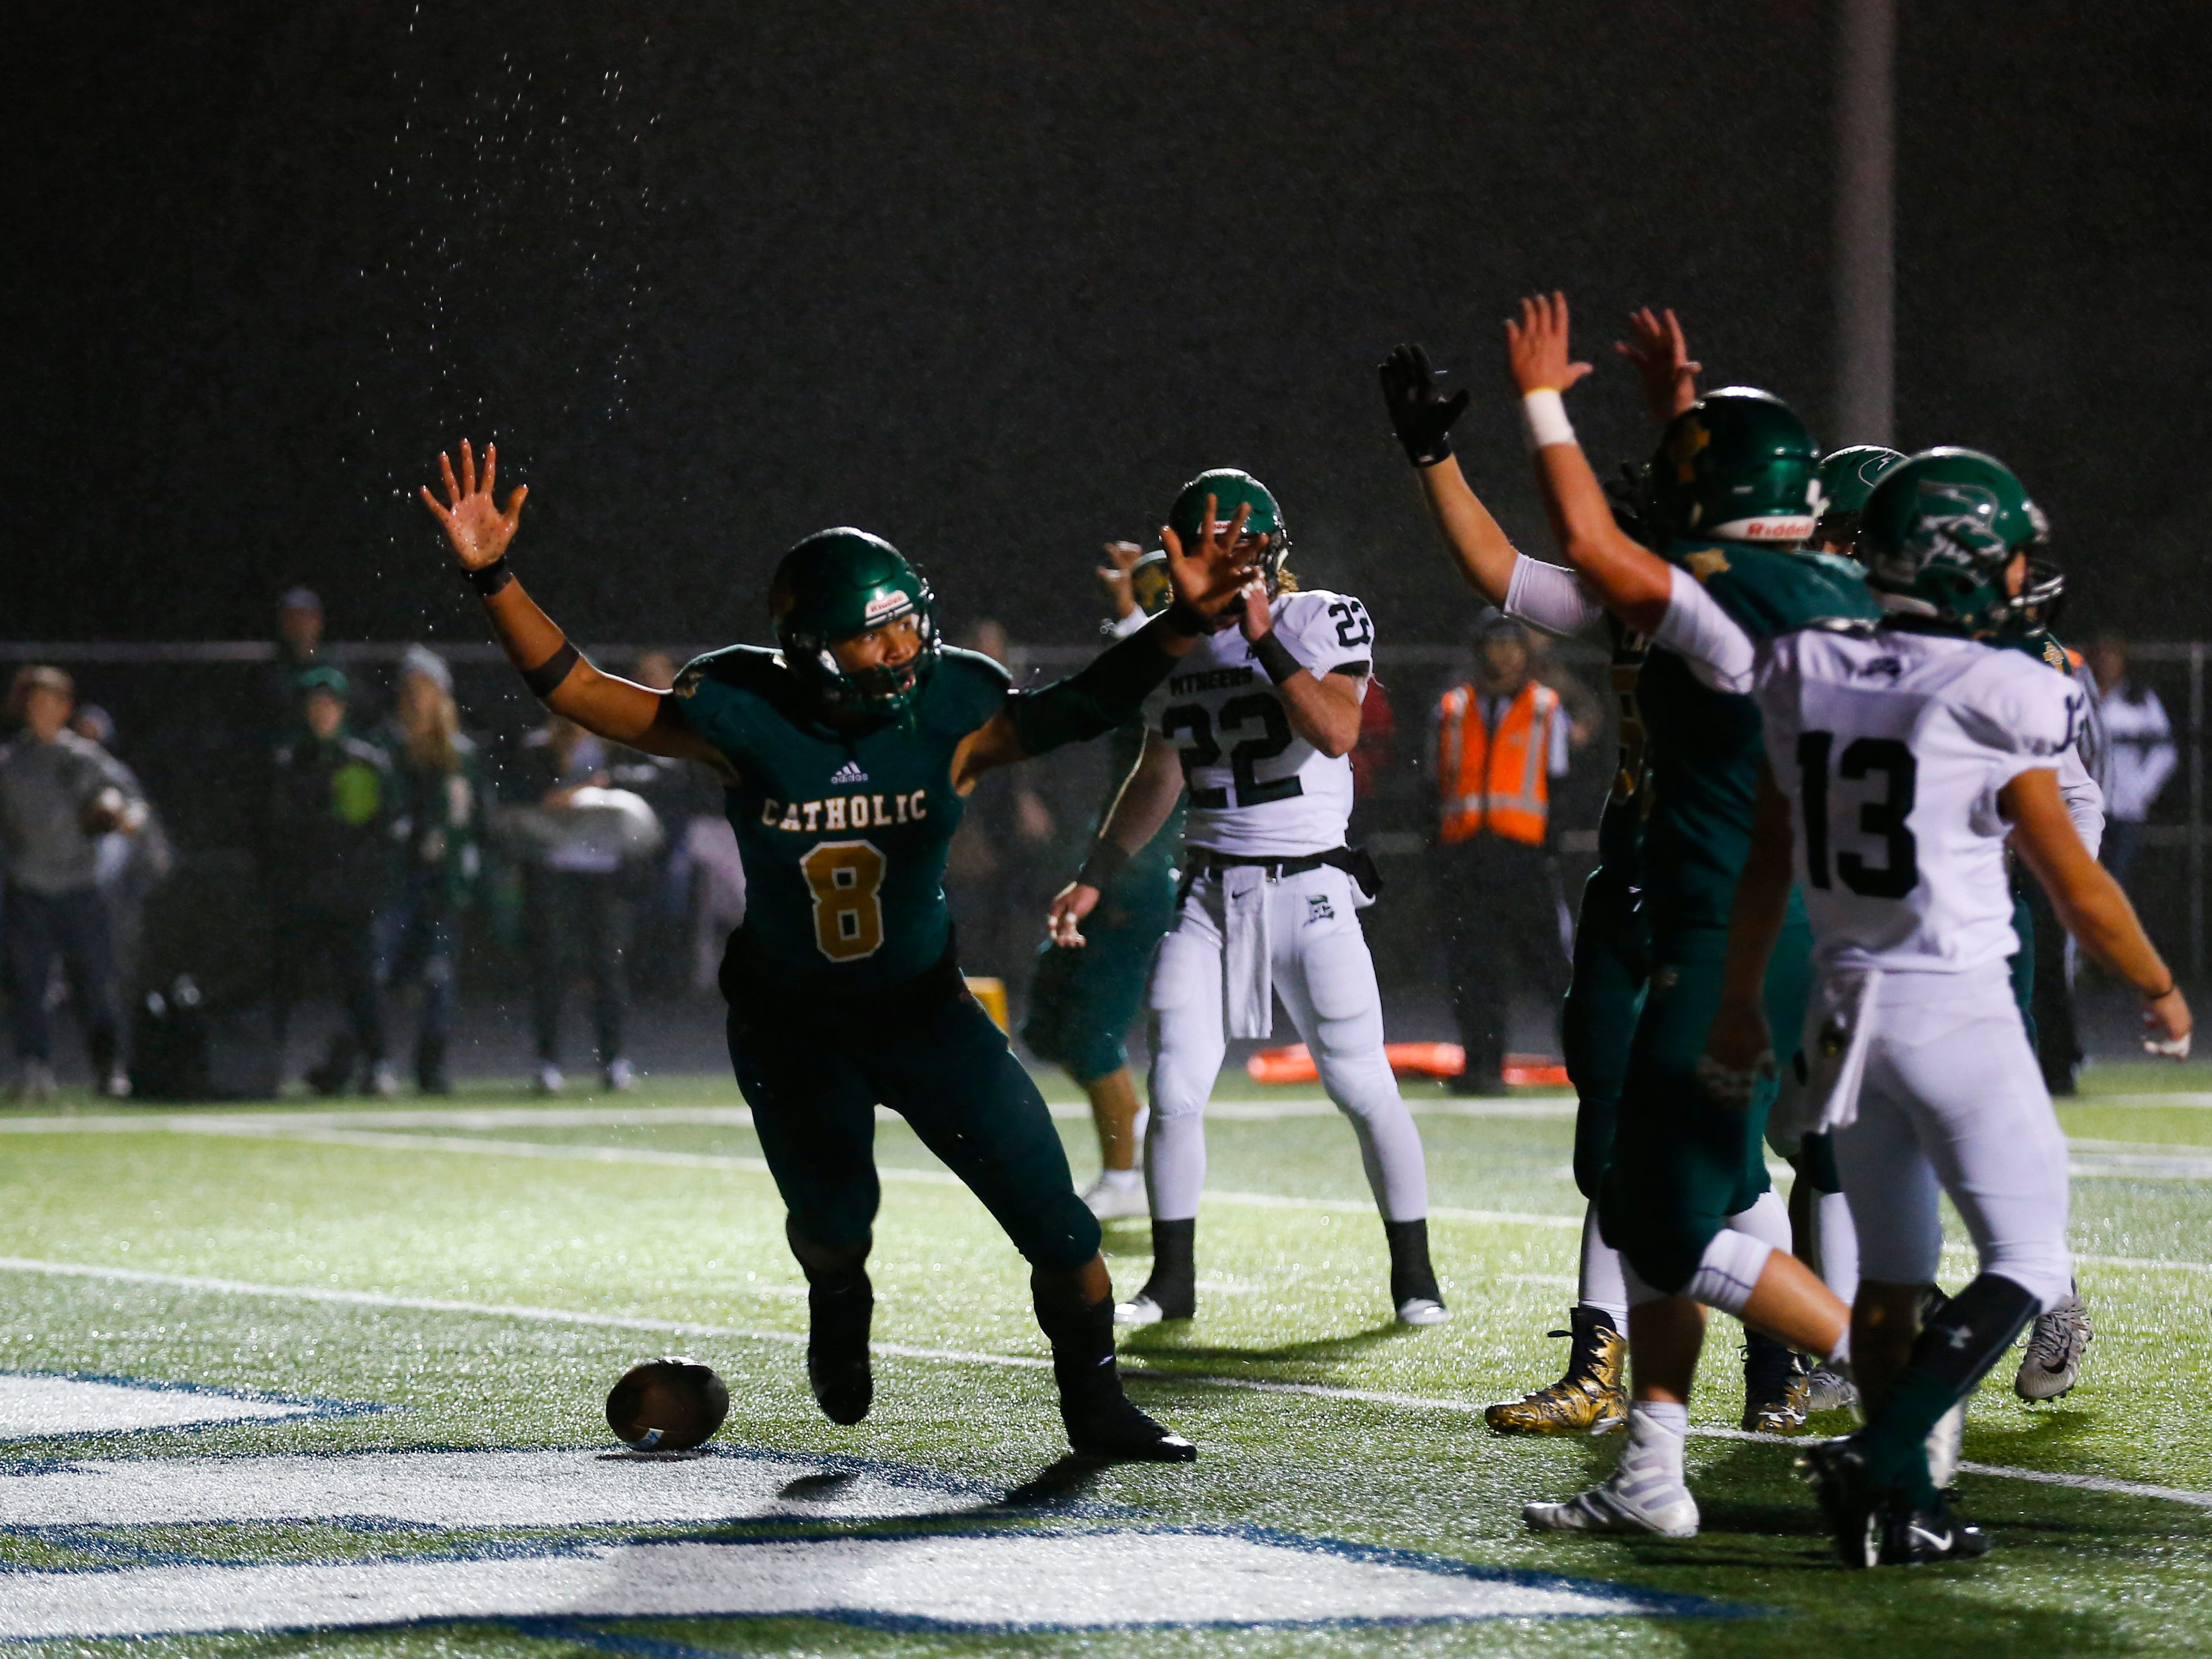 Springfield Catholics Tyson Riley celebrates after scoring a touchdown as the Fightin' Irish take on the Mt. Vernon Mountaineers at Catholic on Friday, Oct. 12, 2018.